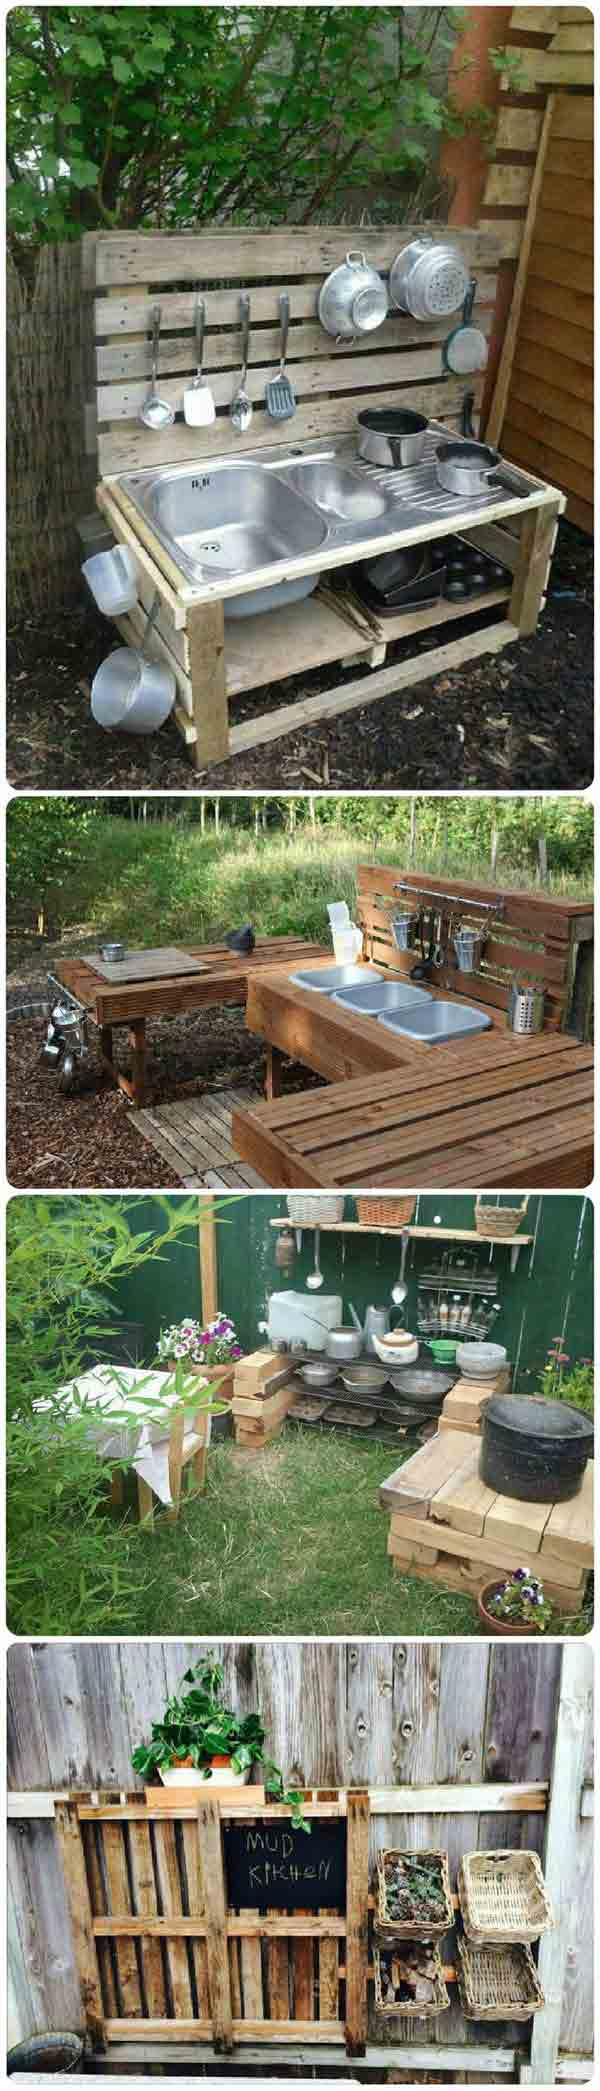 diy-backyard-projects-kid-woohome-25